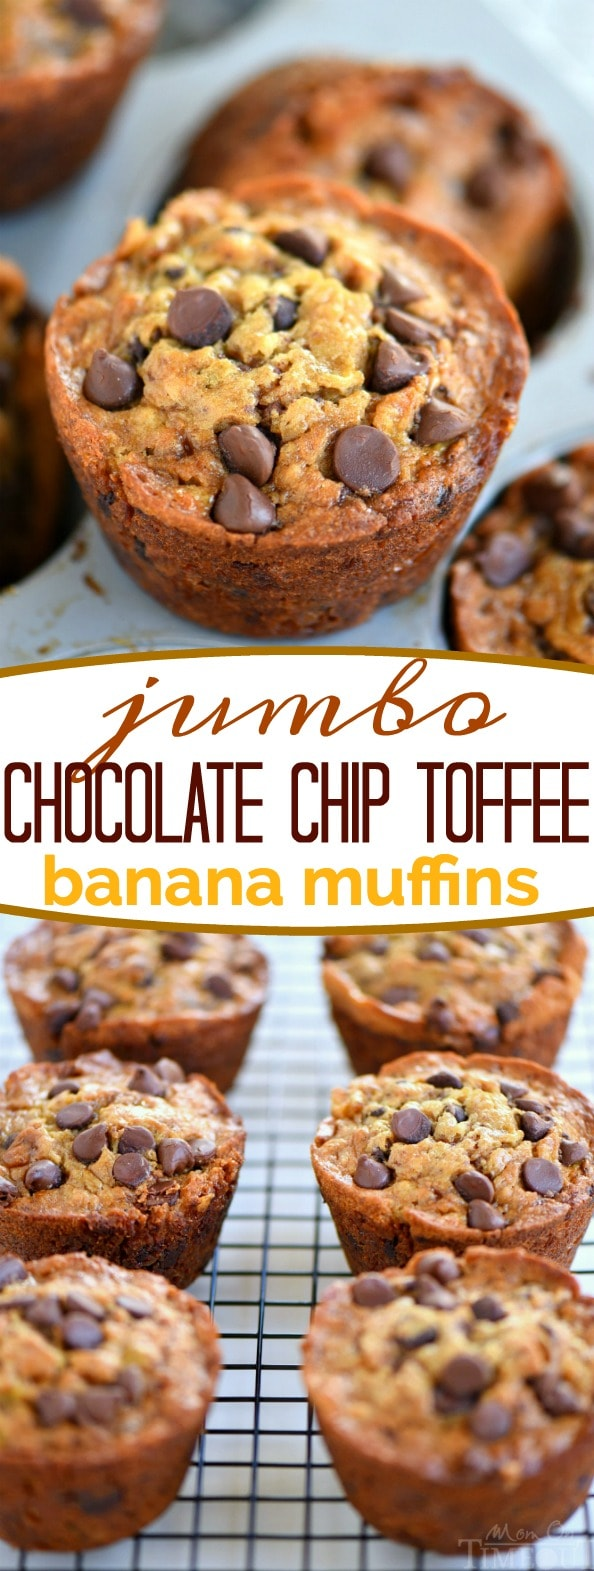 When life gives you ripe bananas - make muffins! These Jumbo Chocolate Chip Toffee Banana Muffins are incredibly moist and just loaded with flavor! Chocolate and banana go together so well in these delicious muffins! // Mom On Timeout